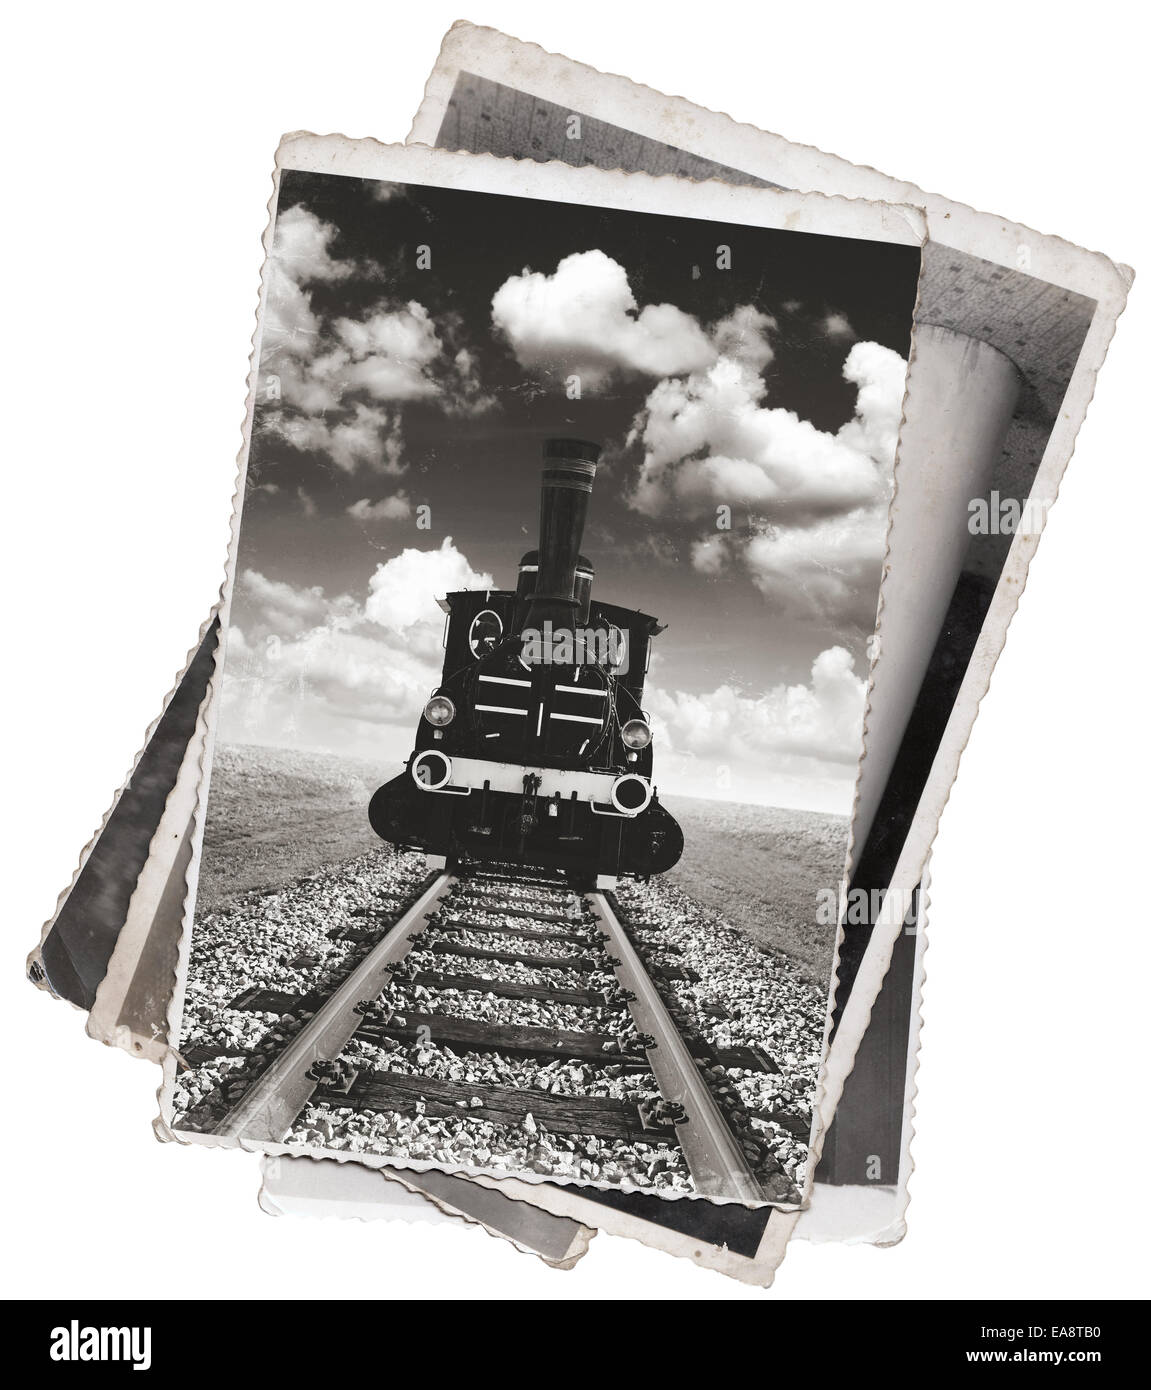 Vintage photos old steam powered locomotive on railway track - Stock Image